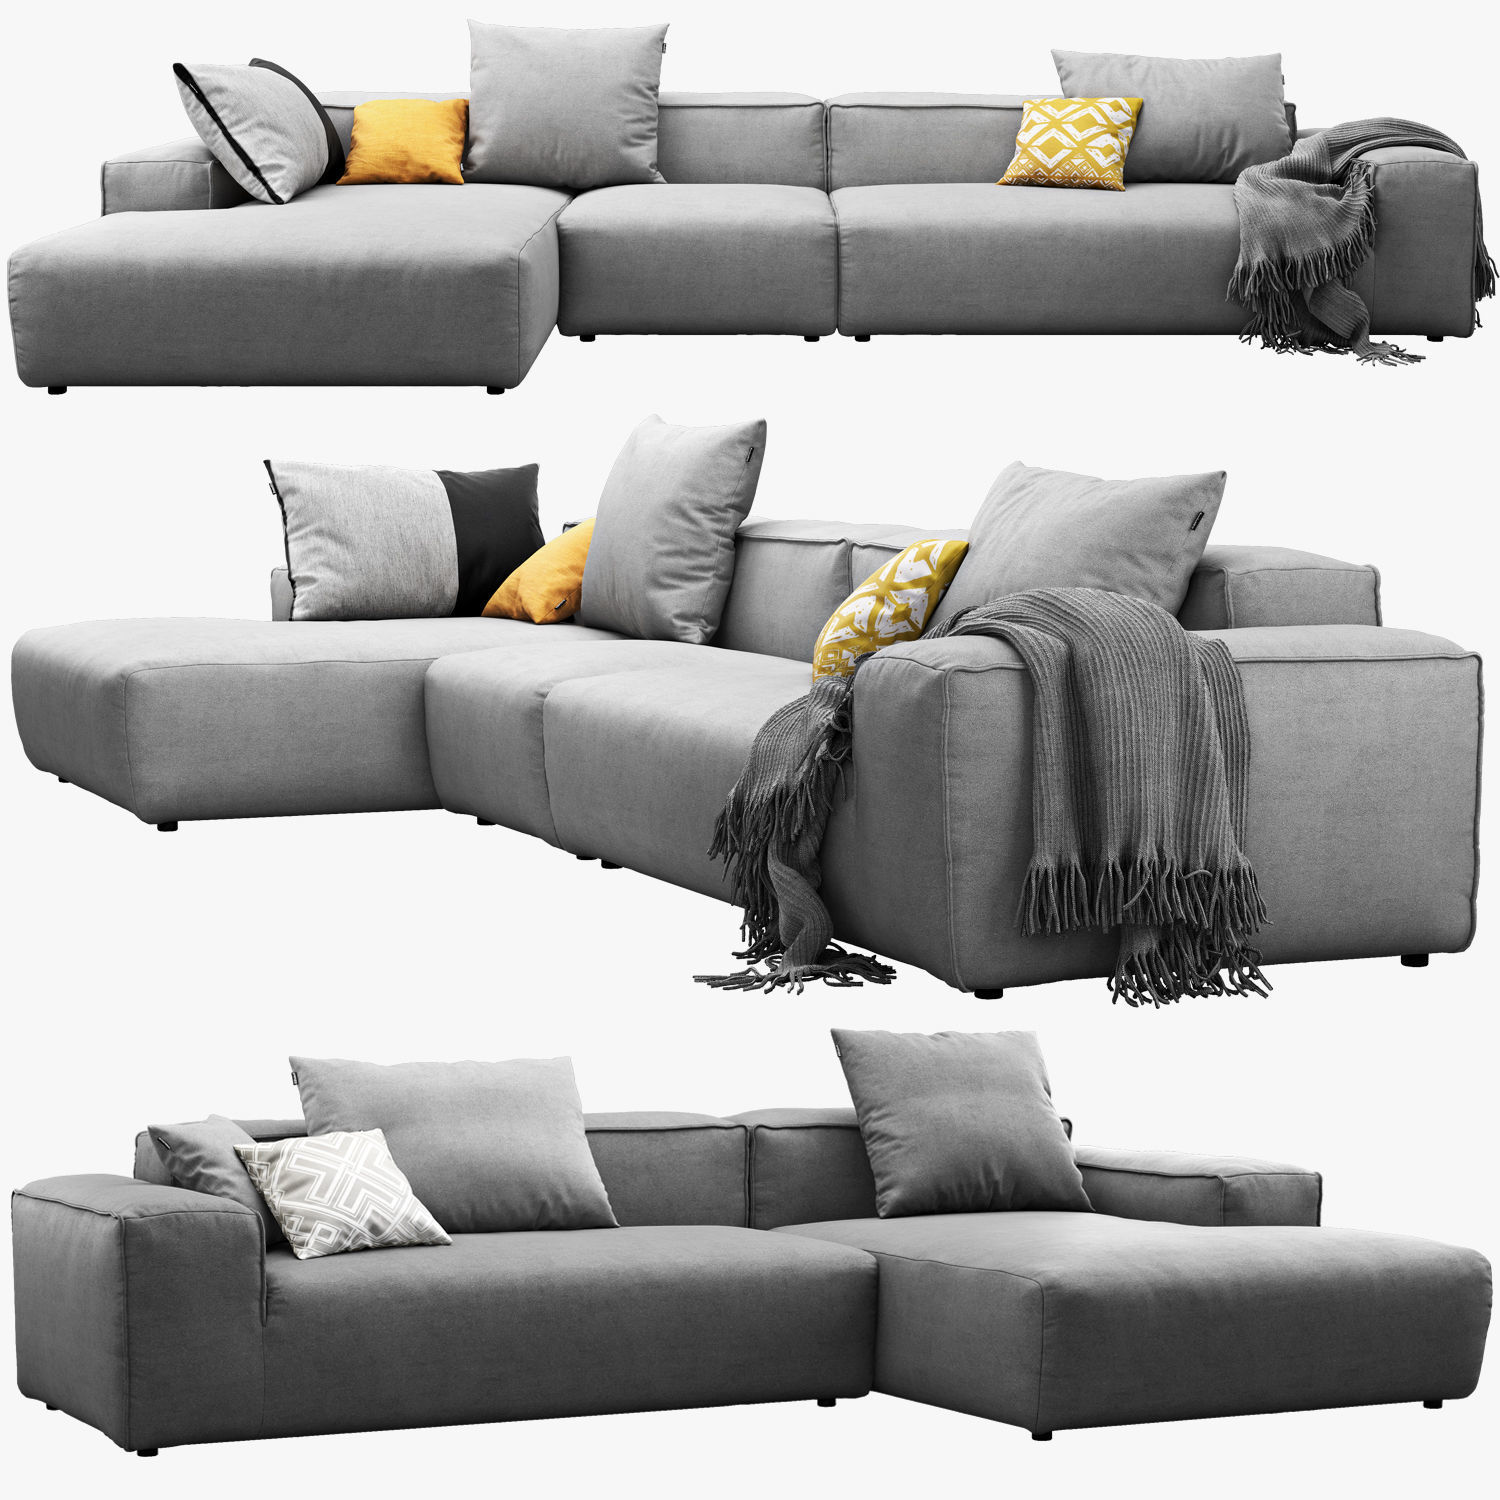 3d Model Rolf Benz Freistil 175 Modular Sofa Set 2